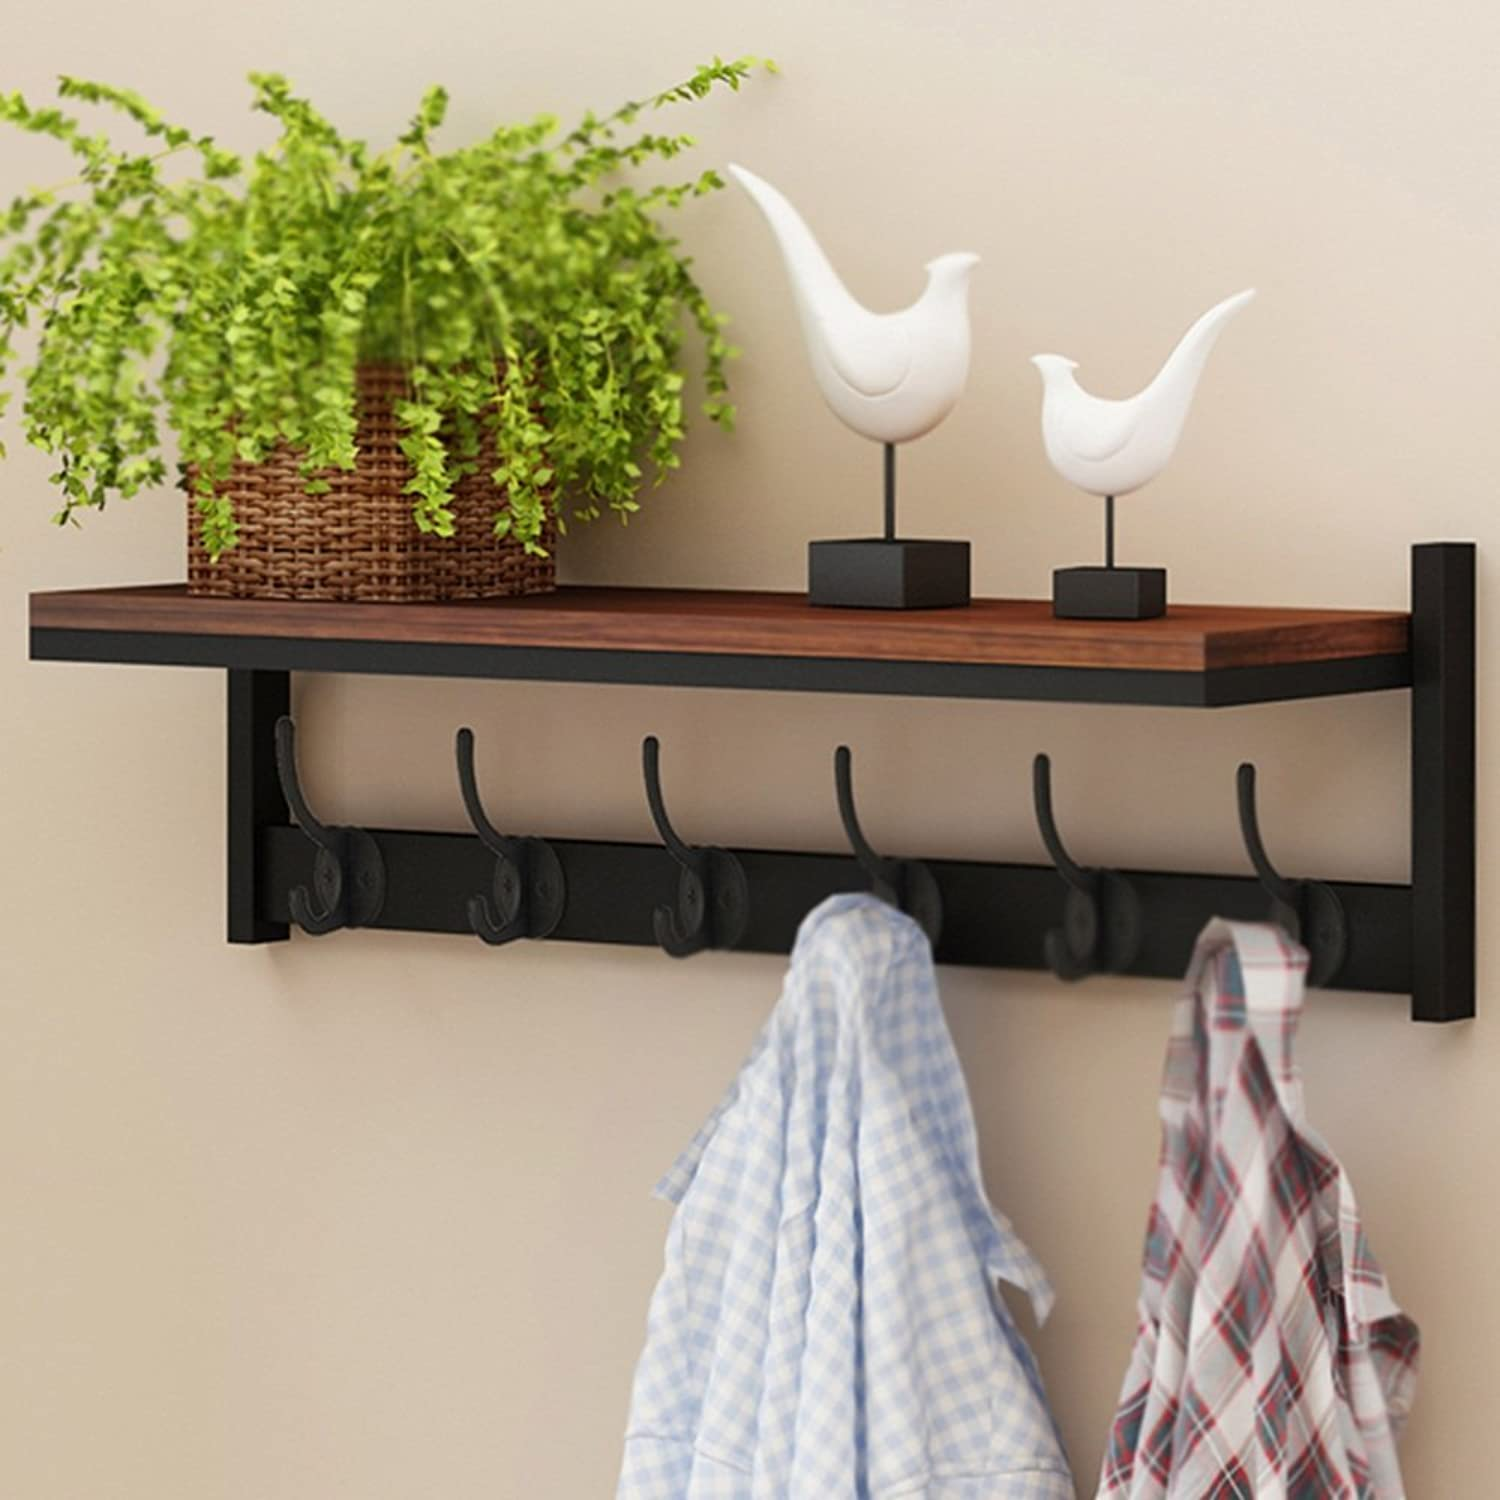 DQMSB Hanger Wall Hanging On The Wall Versatile Simple and Modern Entrance Wall Shelf Entrance Shelf Exquisite and Elegant Strong and Durable Environmentally Friendly and Tasteless Coat Racks